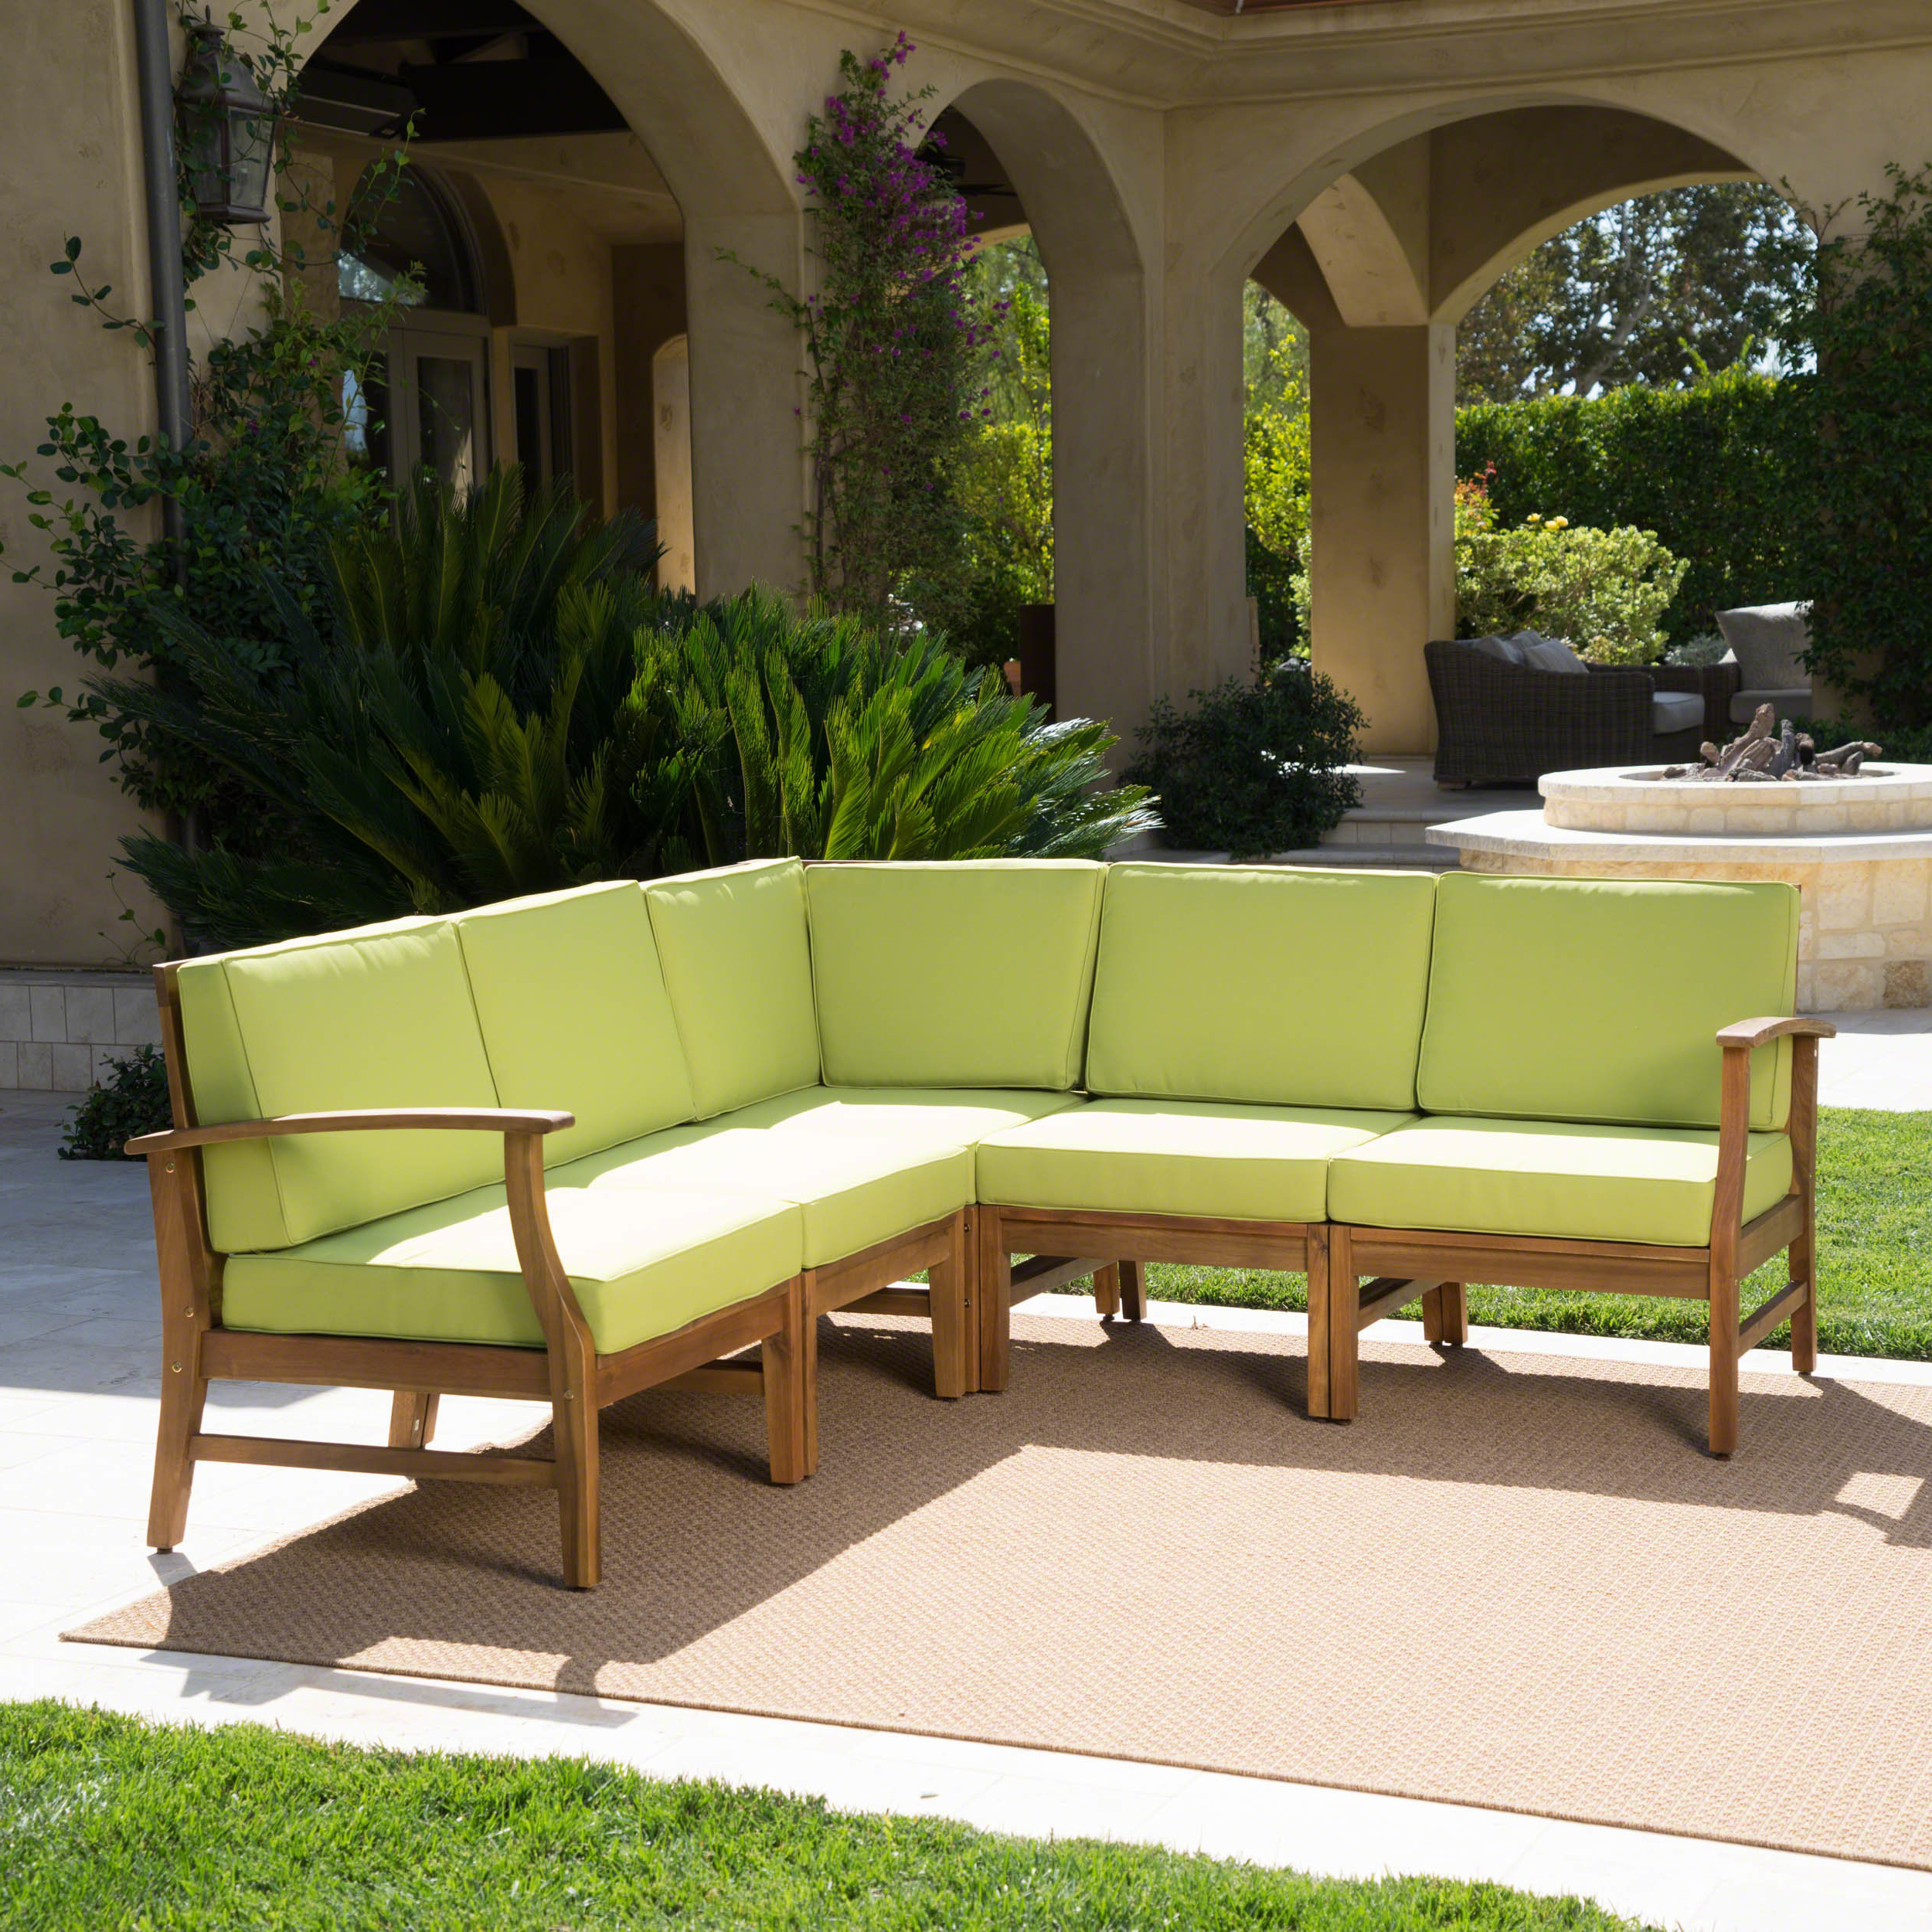 Antonia Teak Patio Sectionals With Cushions Intended For Trendy Antonia Teak Patio Sectional With Cushions (View 5 of 25)